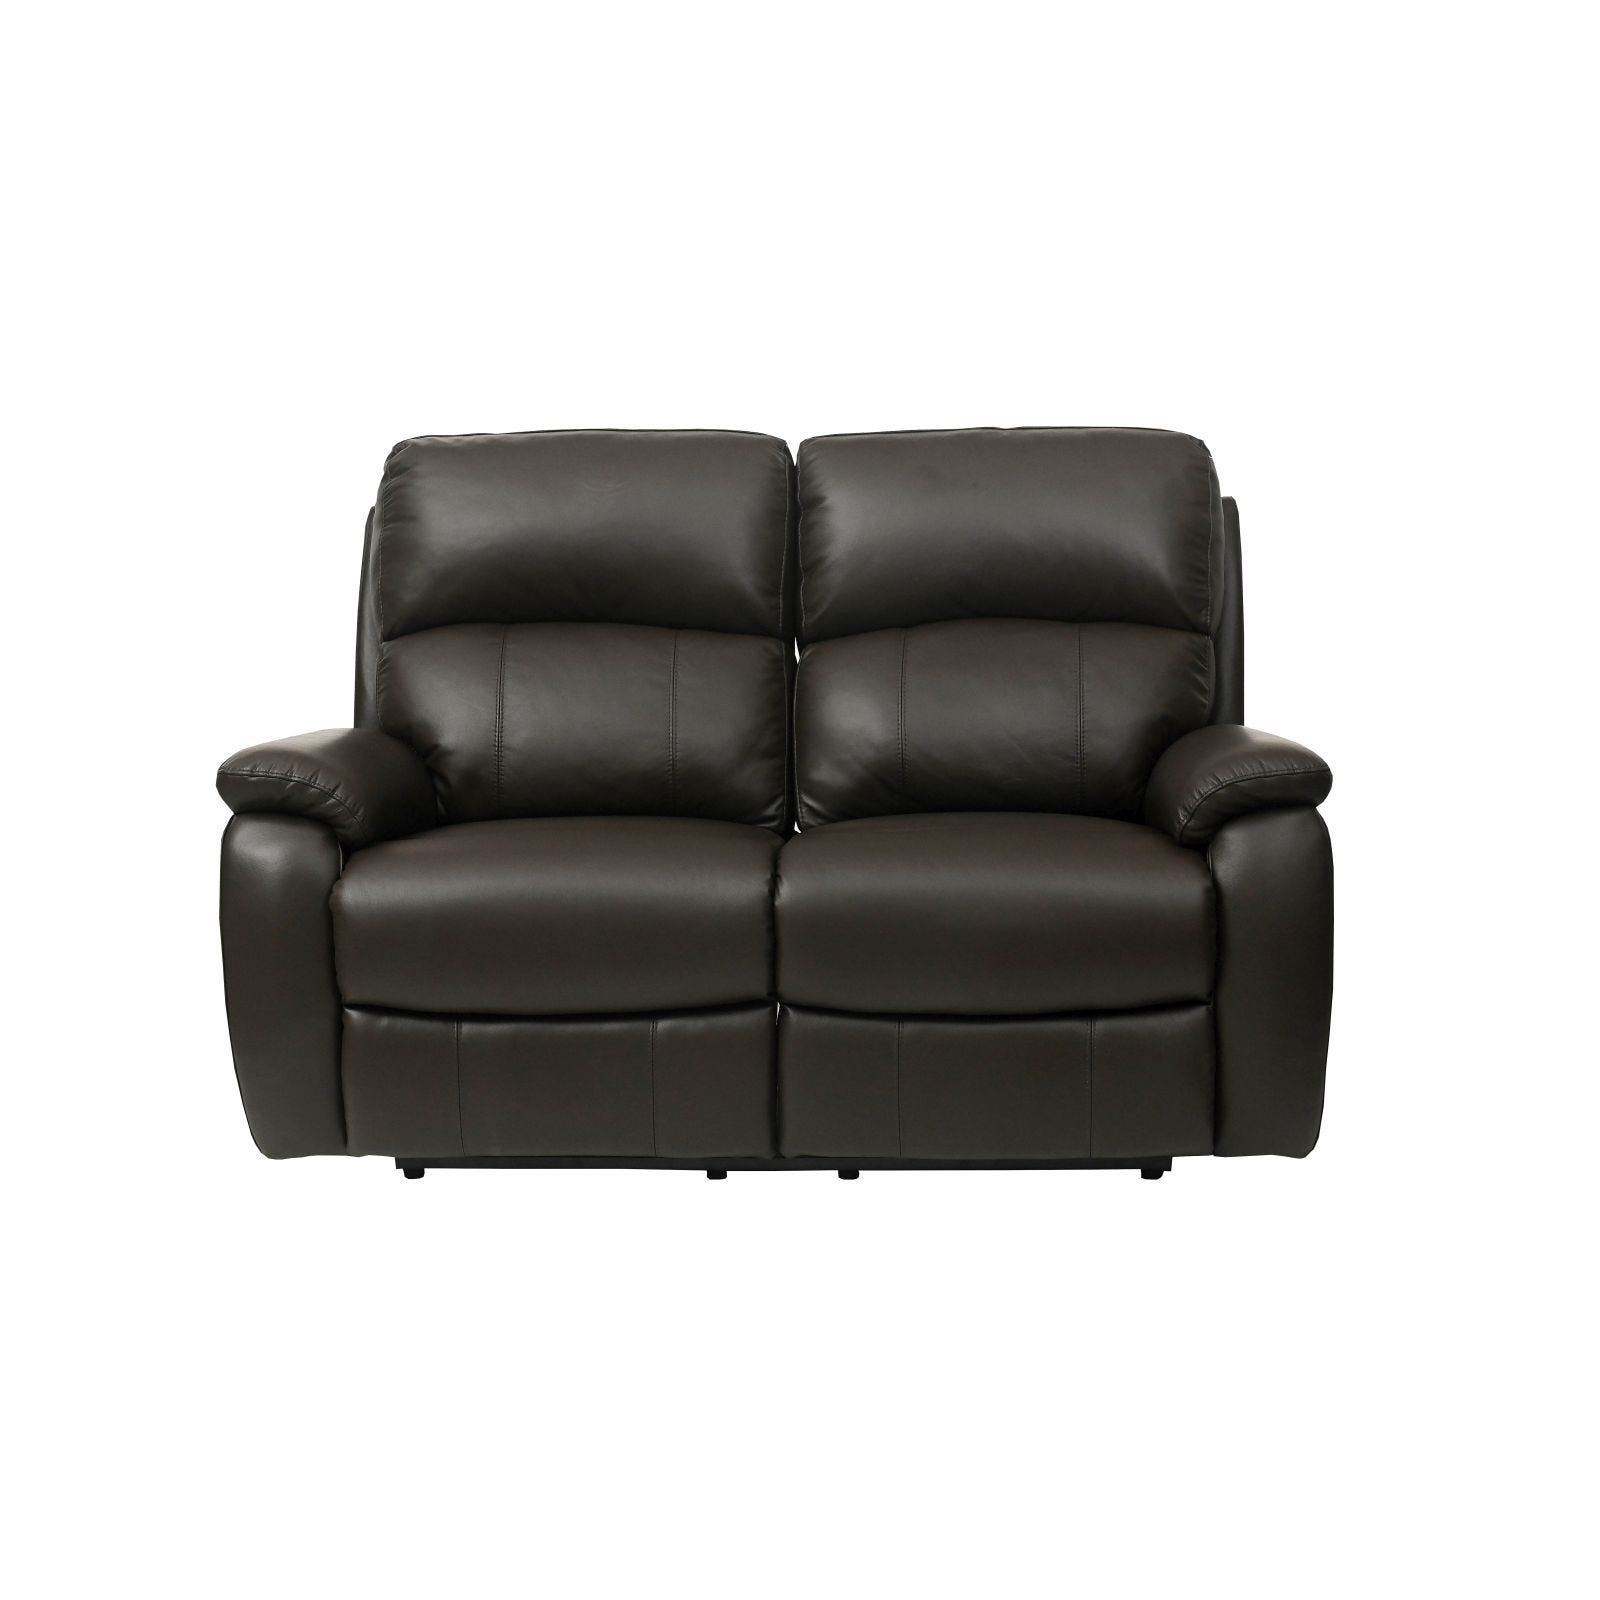 Brown Full Leather Recliner Sofa